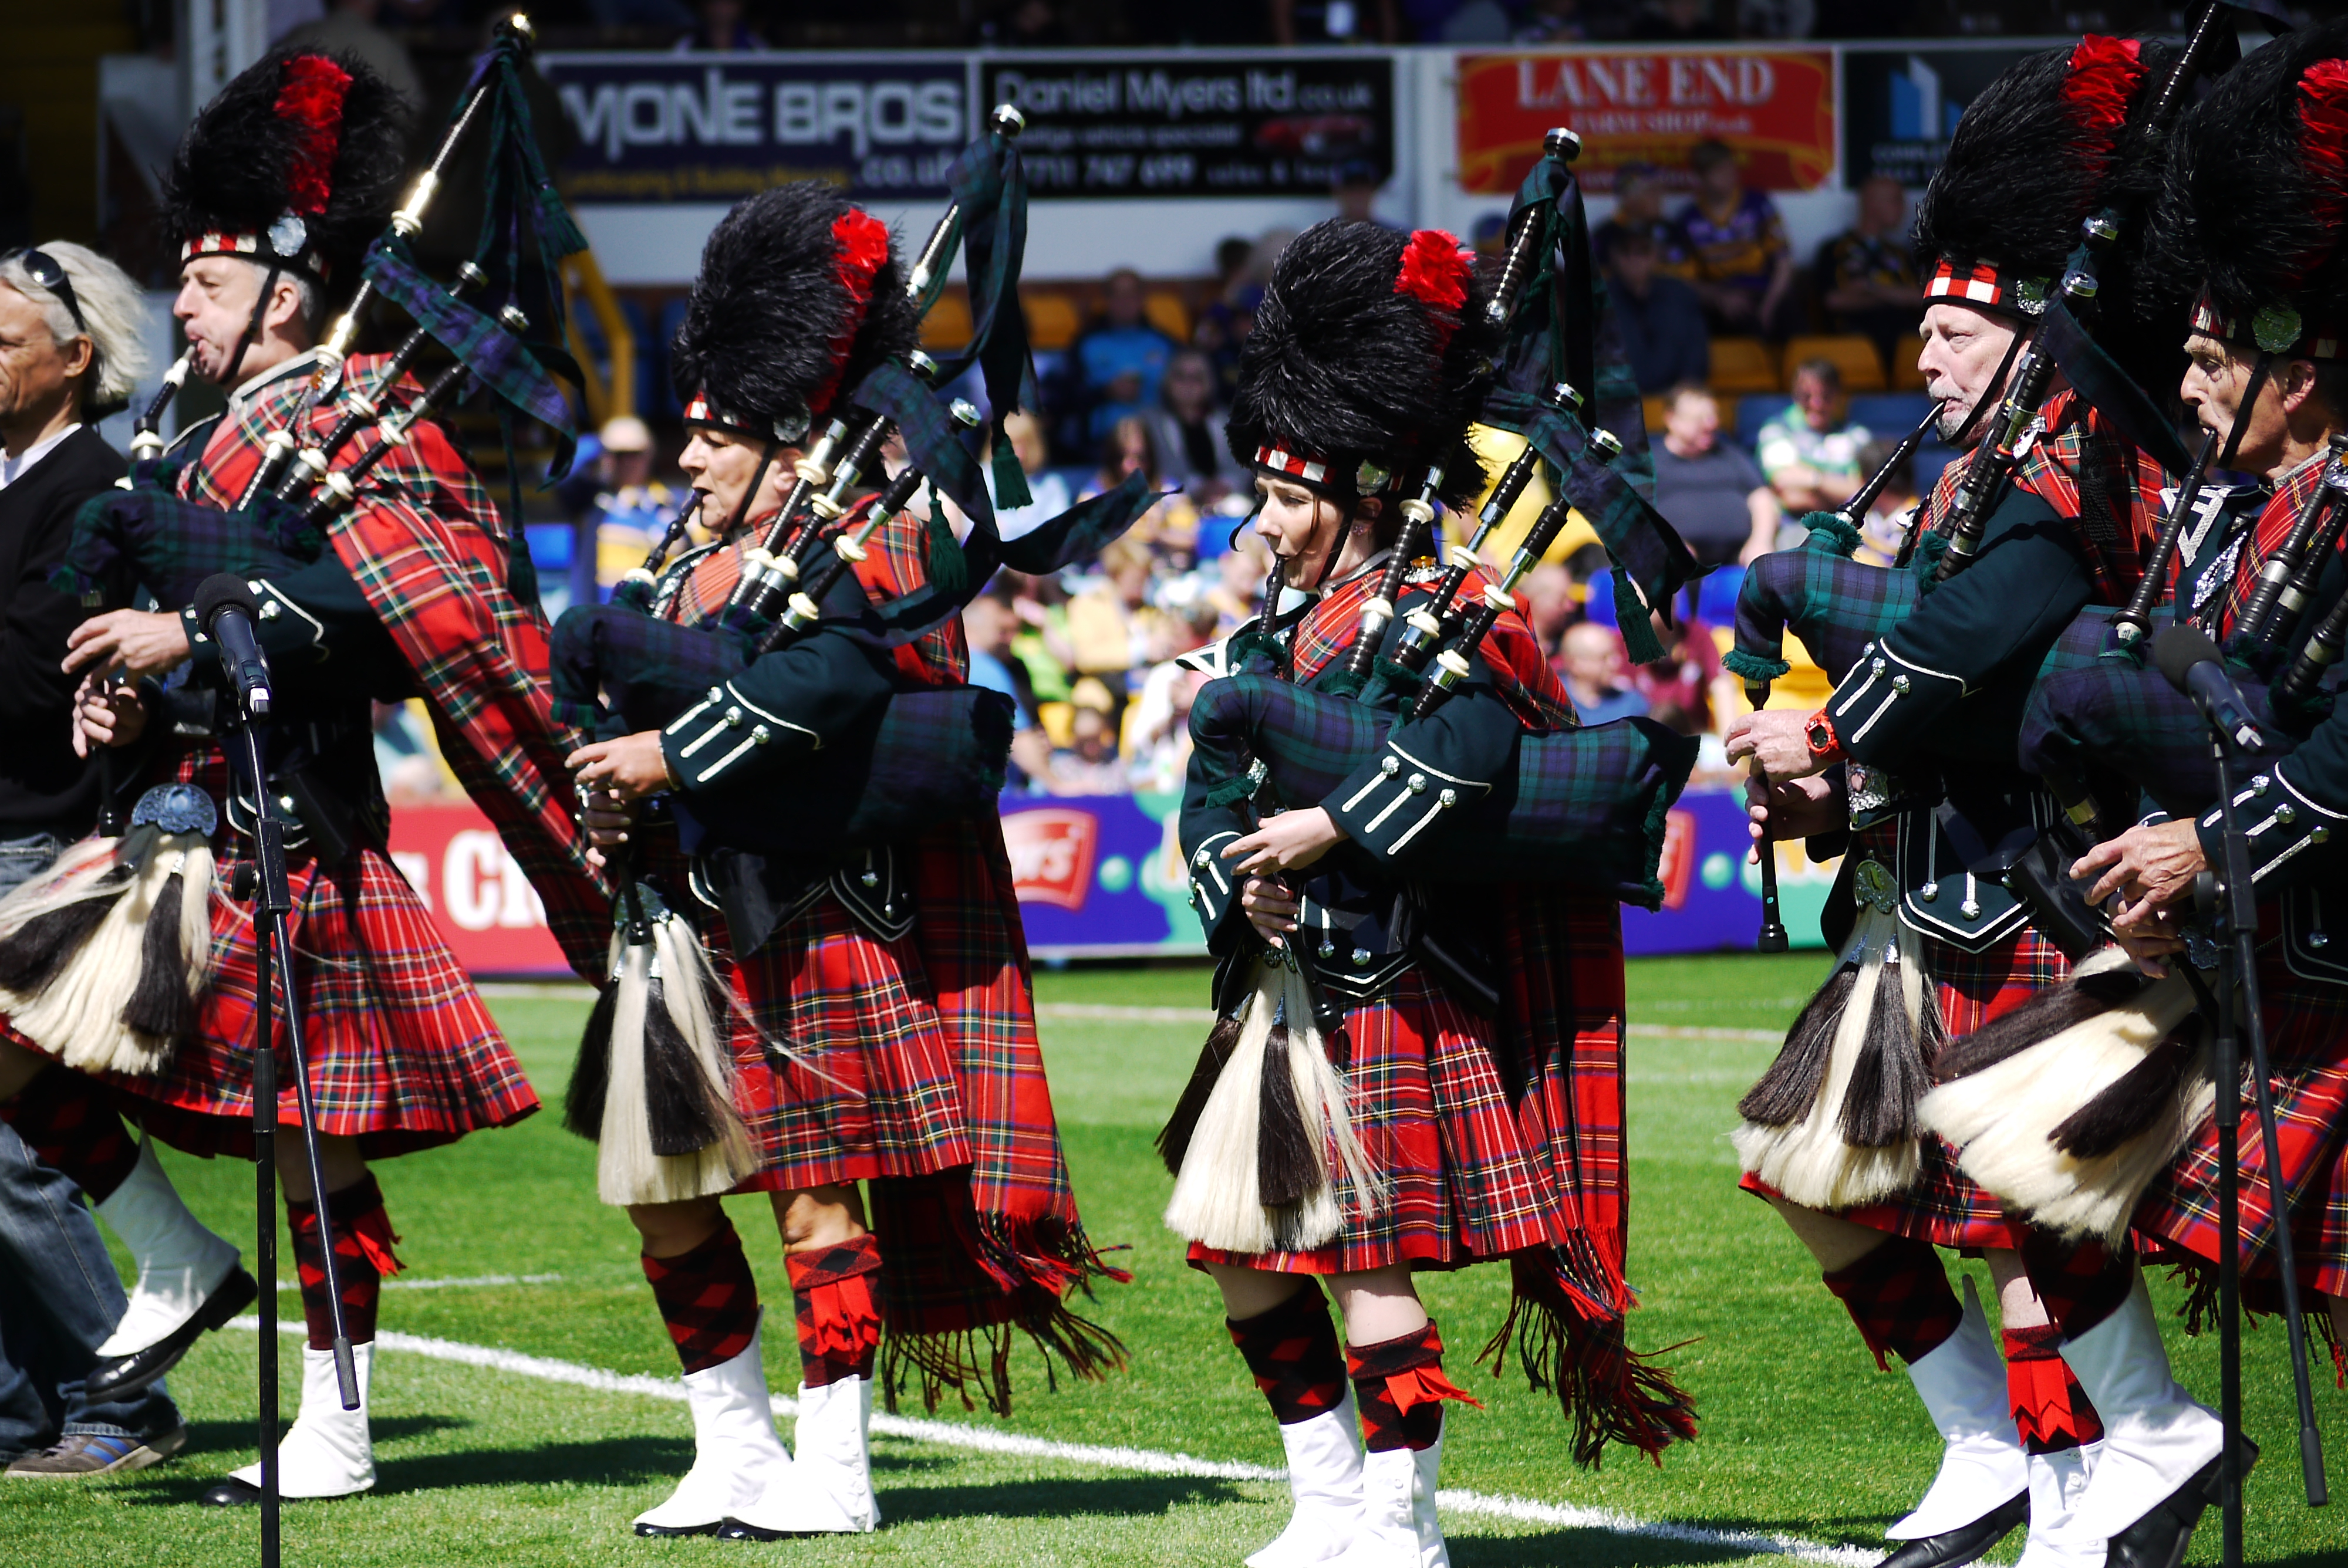 The City of Leeds Pipeband